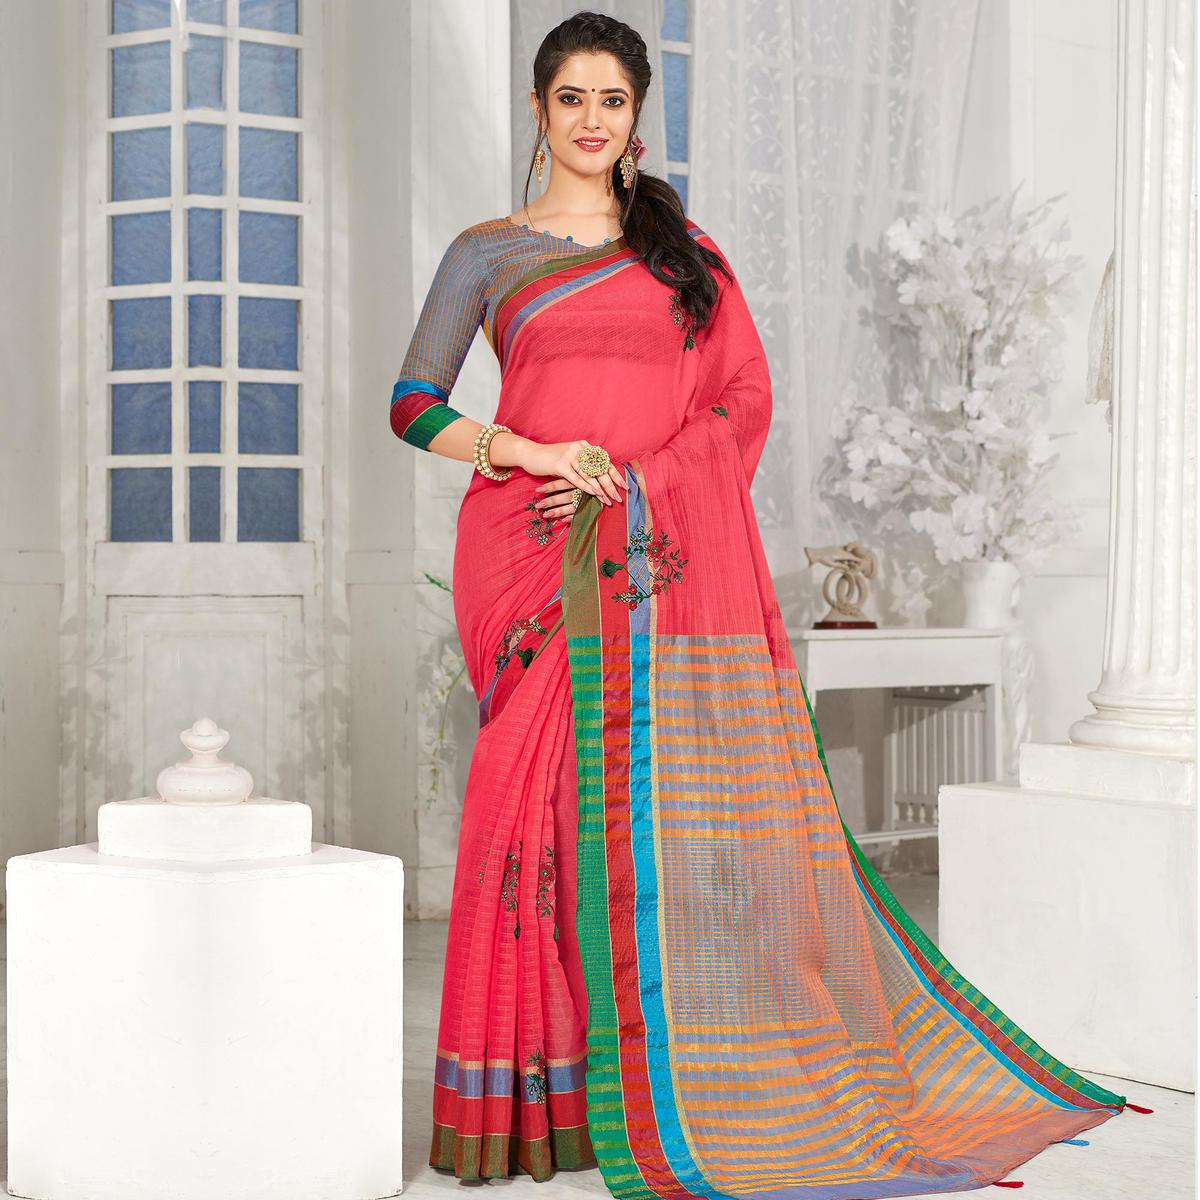 Elegant Coral Red Colored Party Wear Embroidered Cotton Silk Saree With Tassels